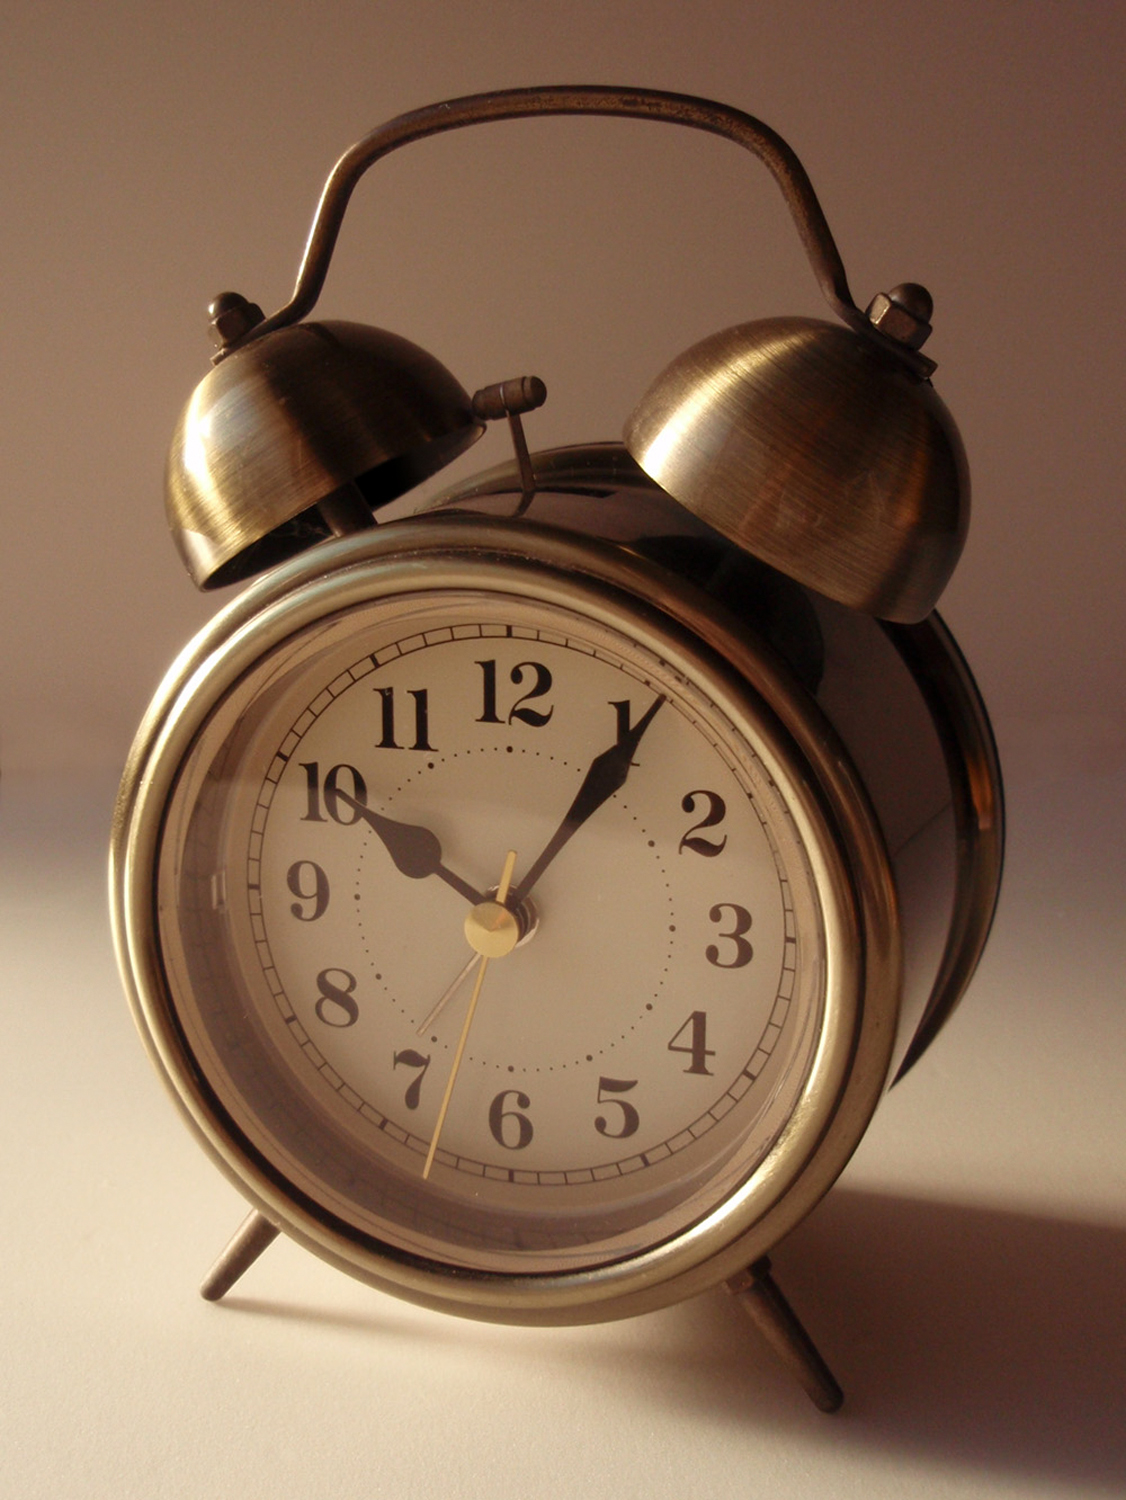 Setting a fixed time to wake up in the morning can help the body adapt to a daily schedule.